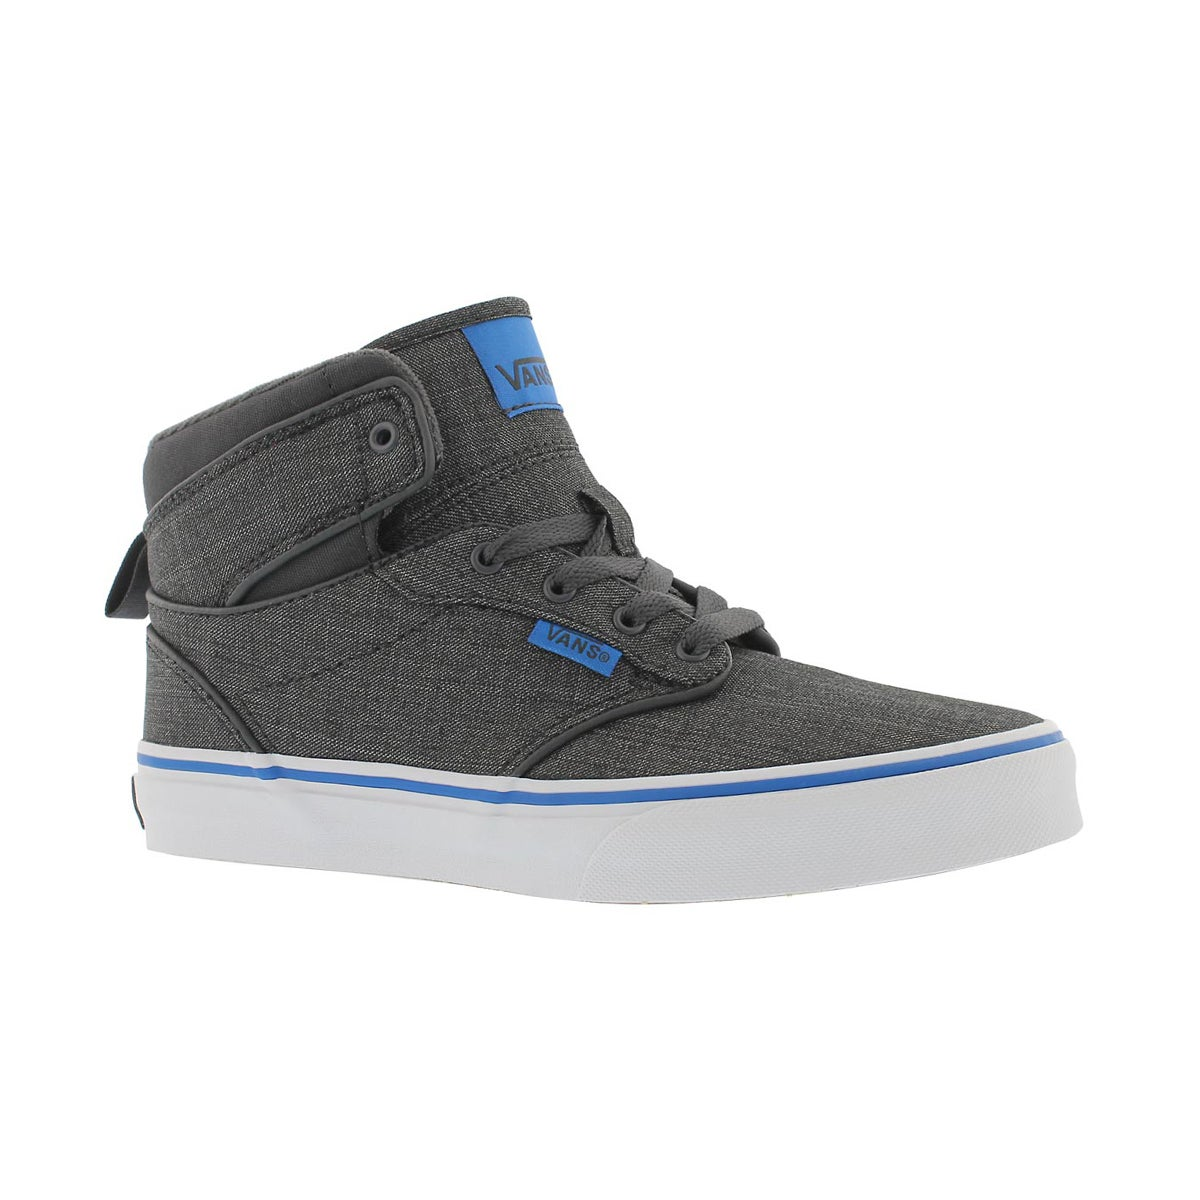 Boys' ATWOOD HI grey/blue lace up sneaker